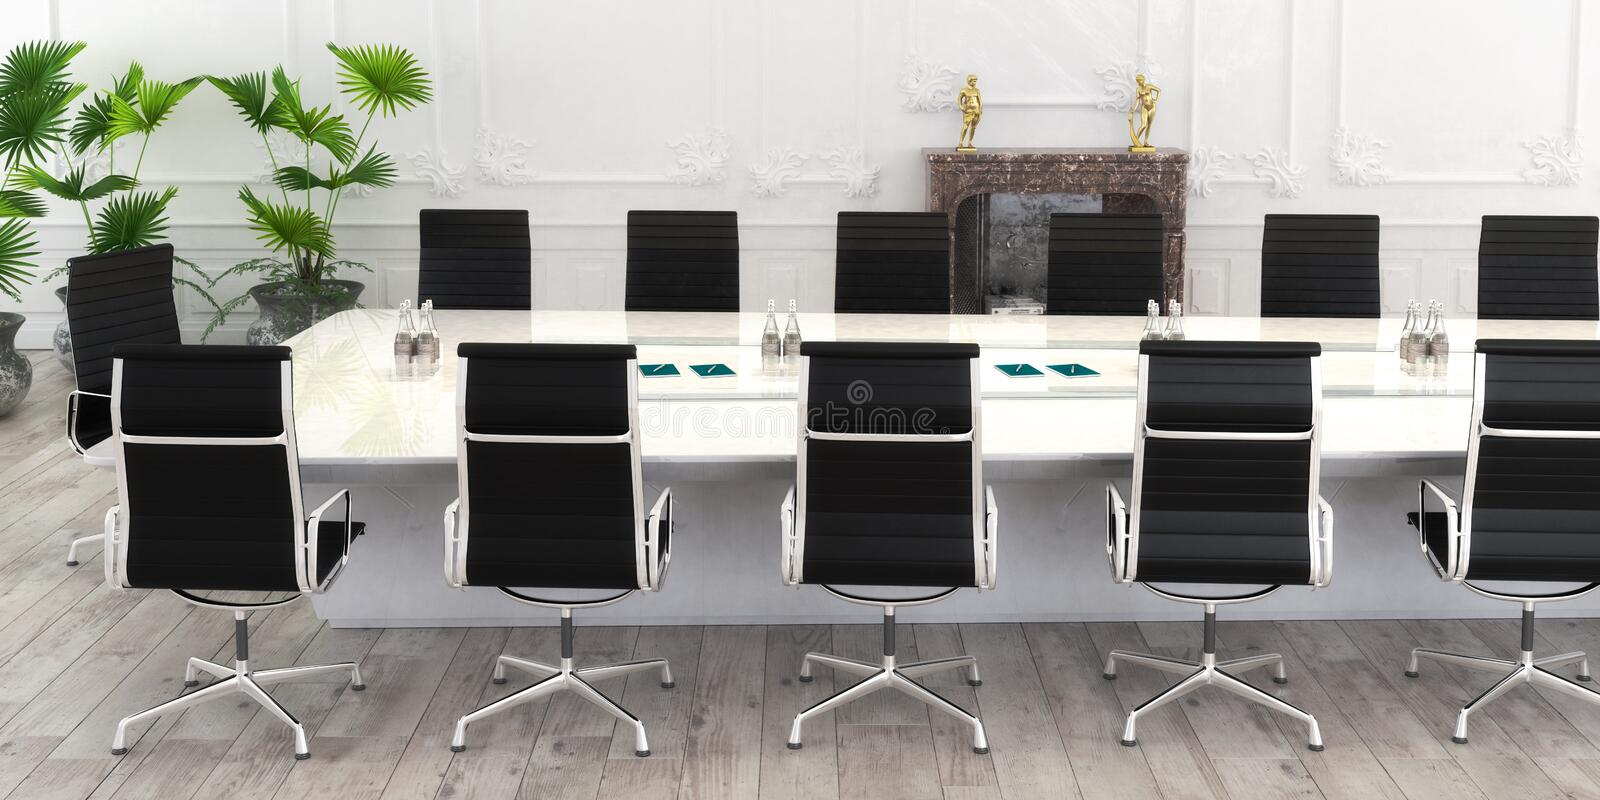 Conference Table panoramic vector illustration